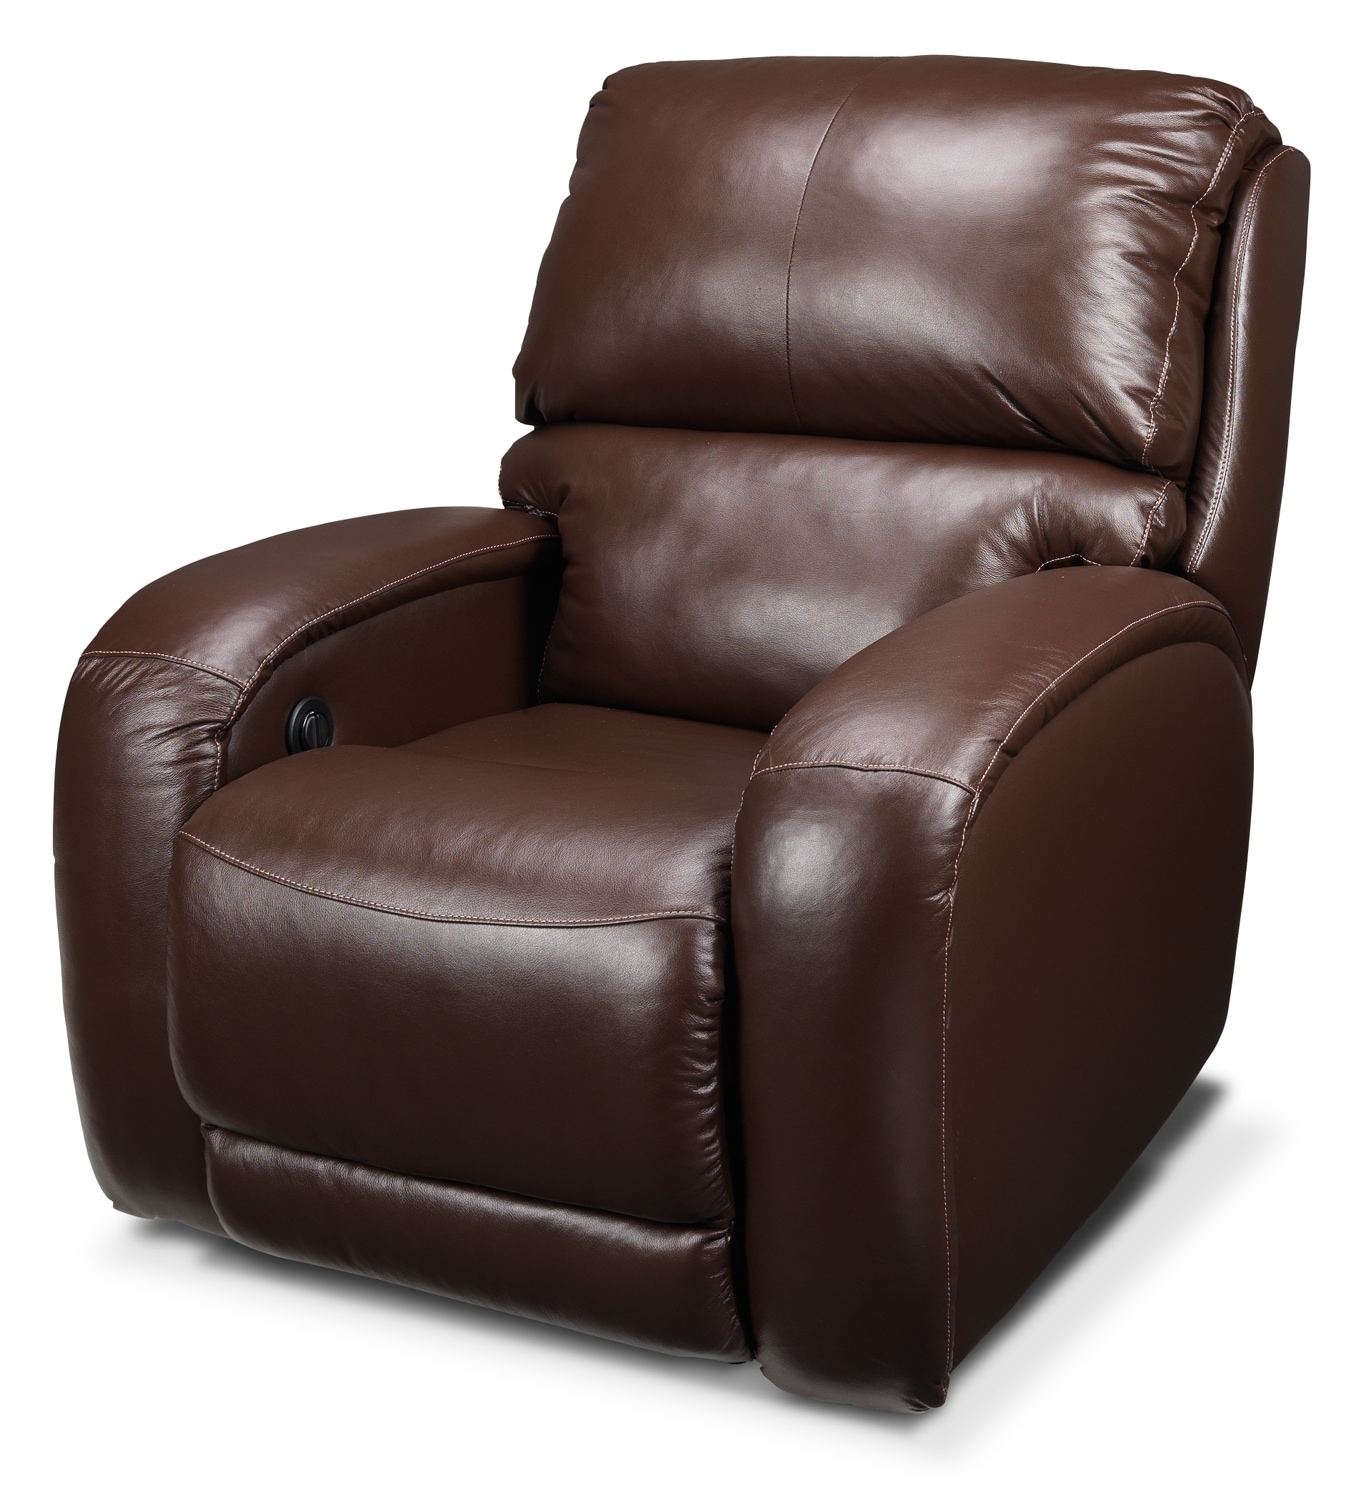 Living Room Furniture - Fabian Power Recliner - Coffee